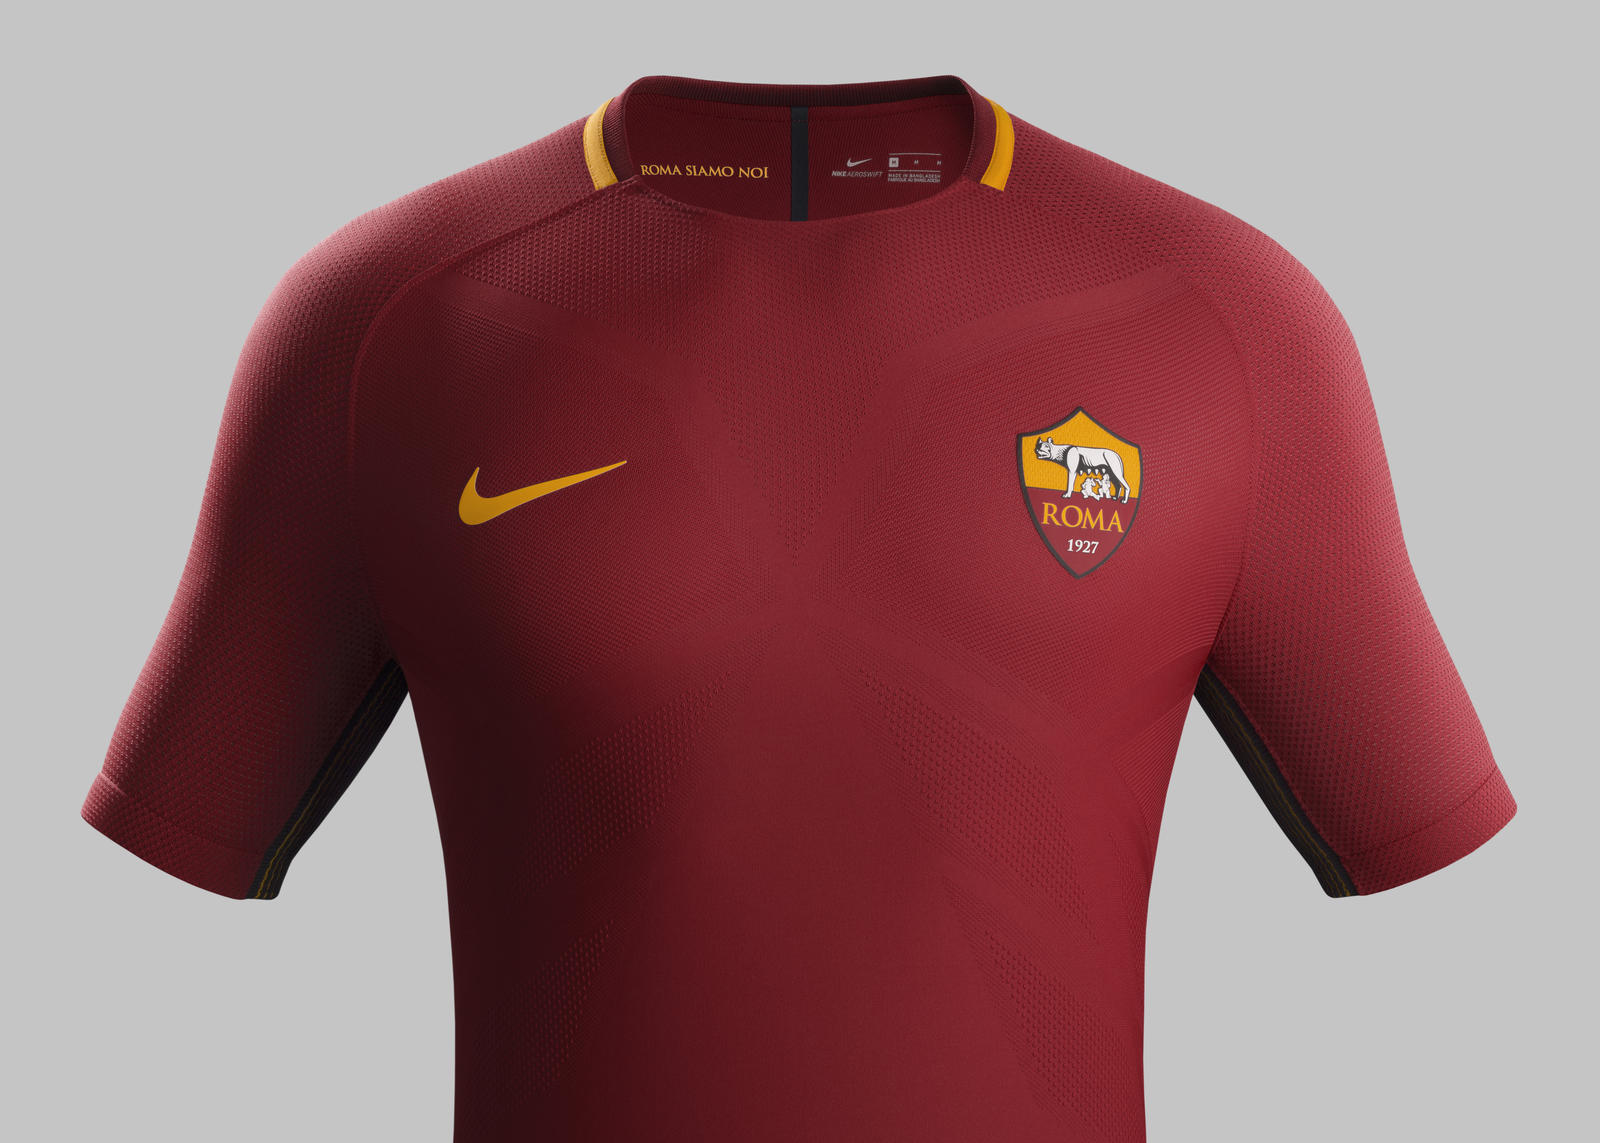 Fy17 18 club kits h front match as roma r rectangle 1600